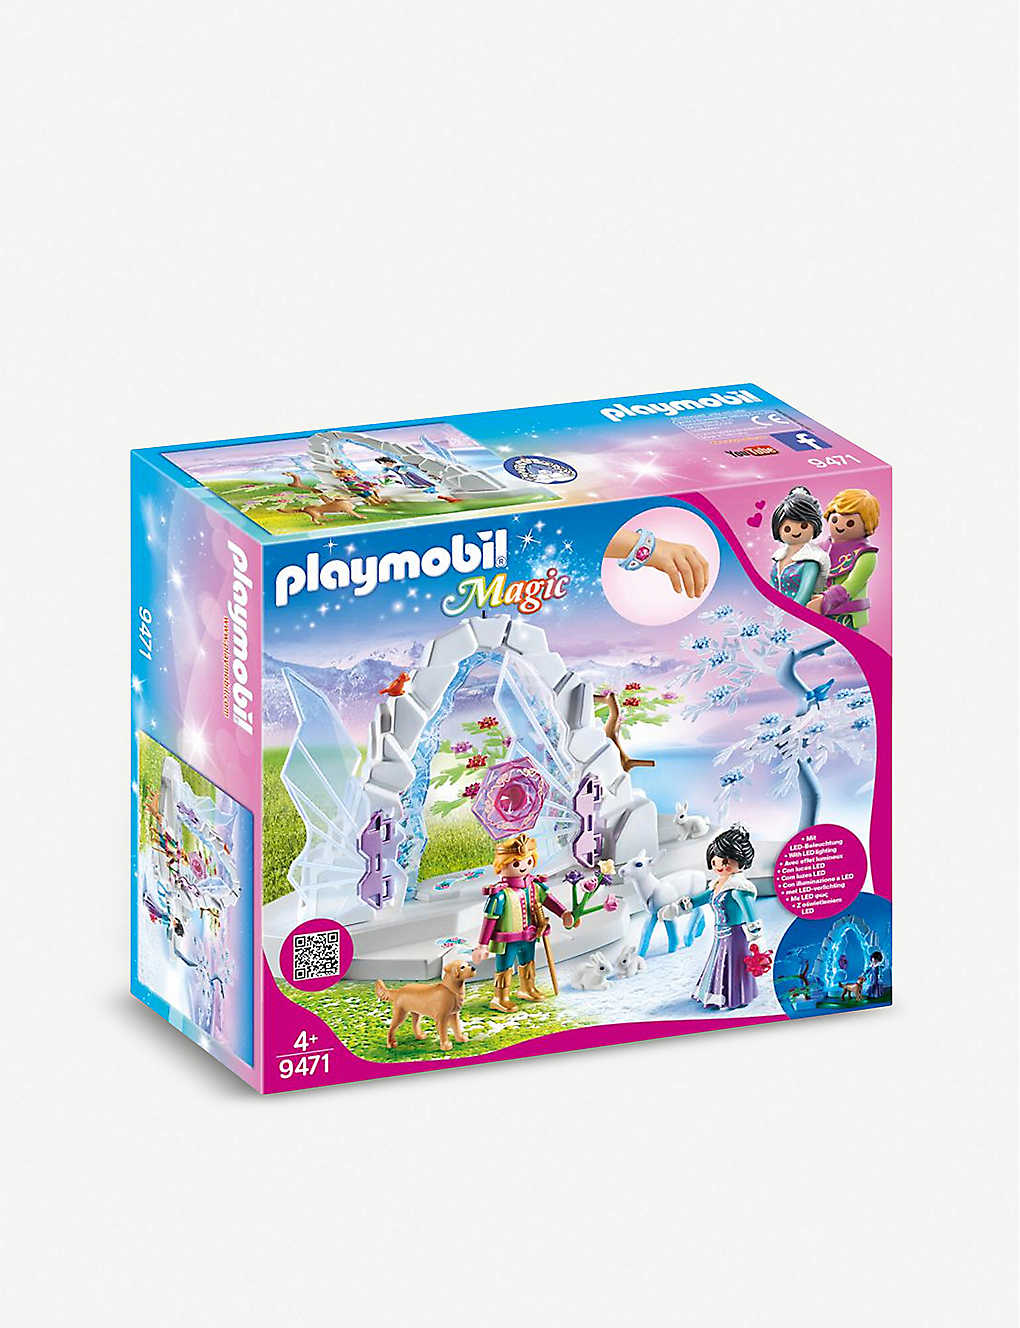 PLAYMOBIL: Magic Crystal Gate to the Winter World playset